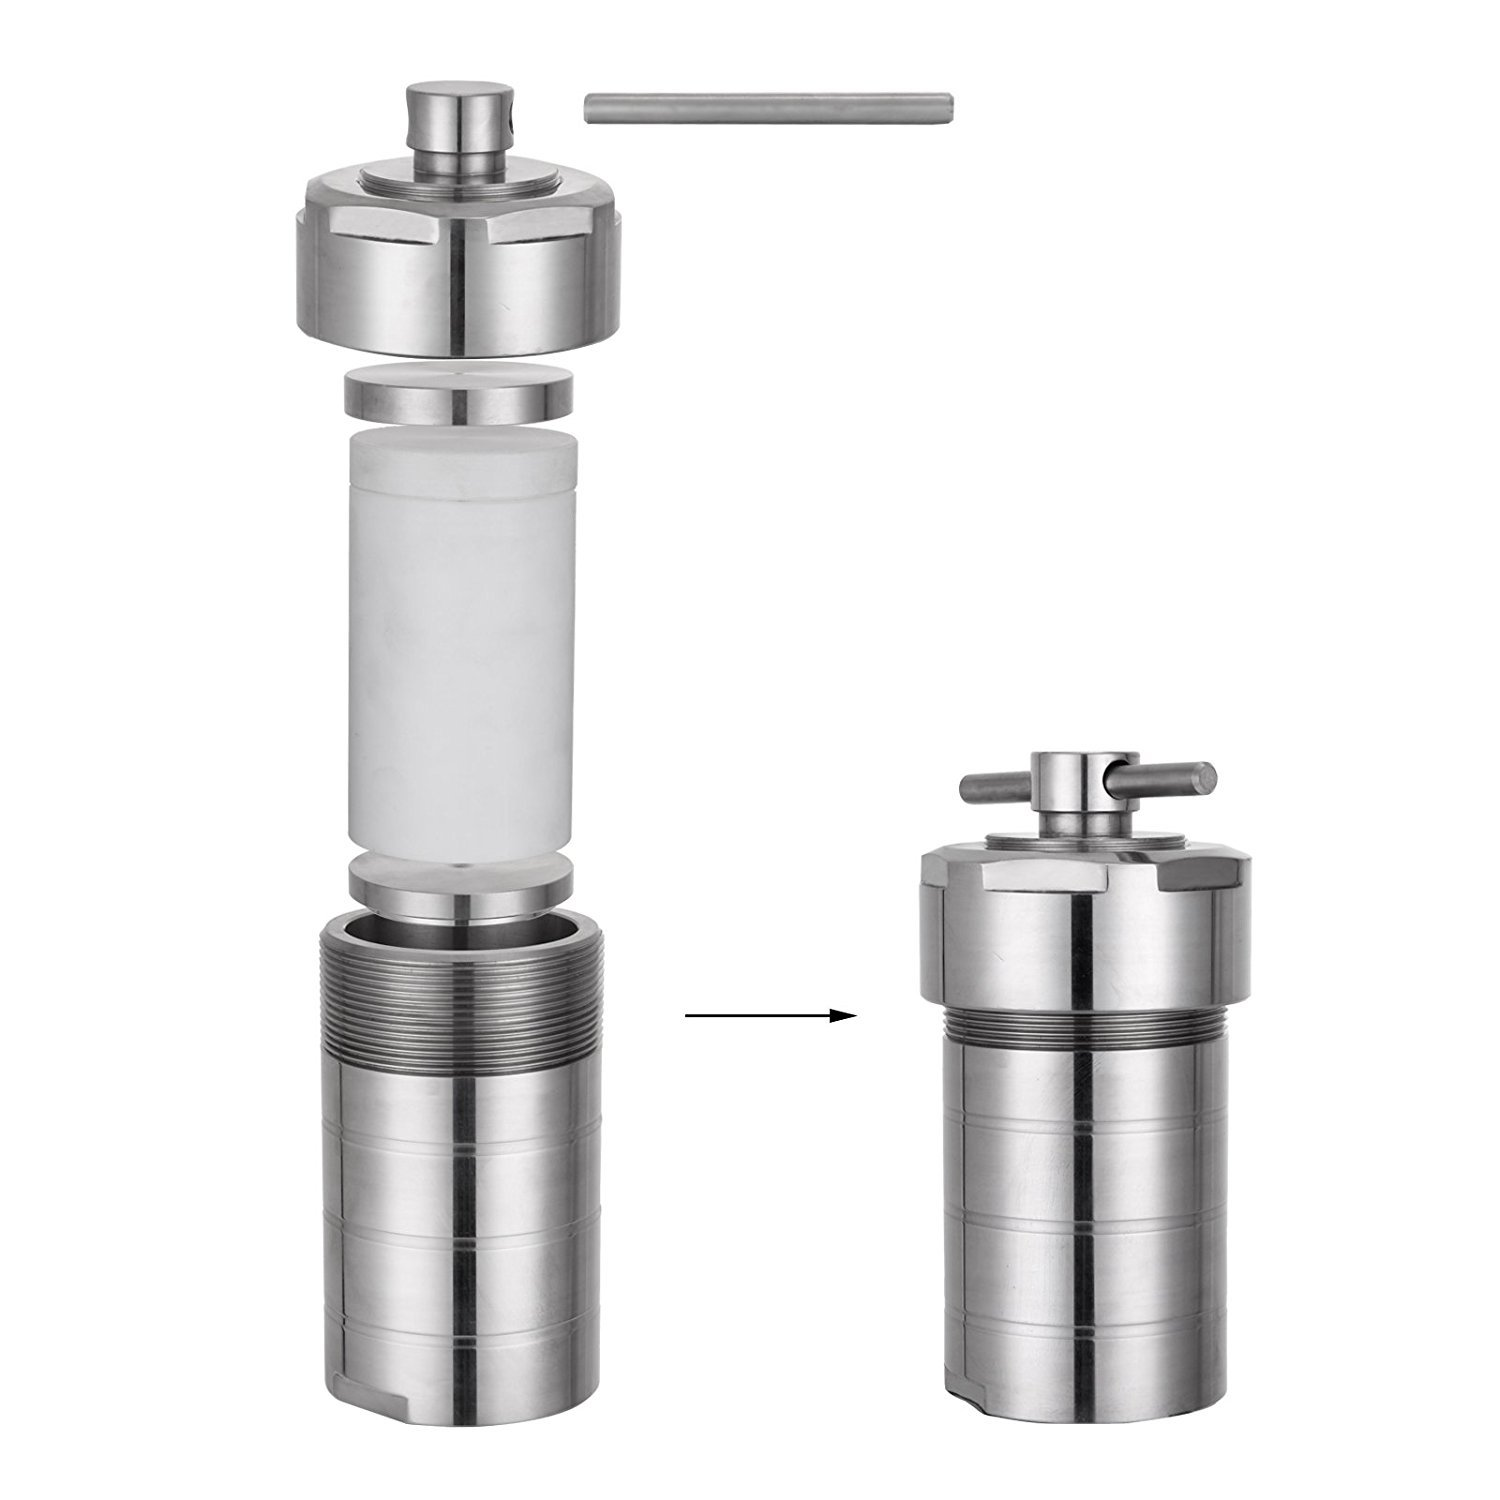 25ml Teflon Lined Hydrothermal Synthesis Autoclave Reactor 304 Steel Hydrothermal PTFT Hydrothermal Reactor Hydrothermal Autoclave Reactor PTFE Lined Vessel